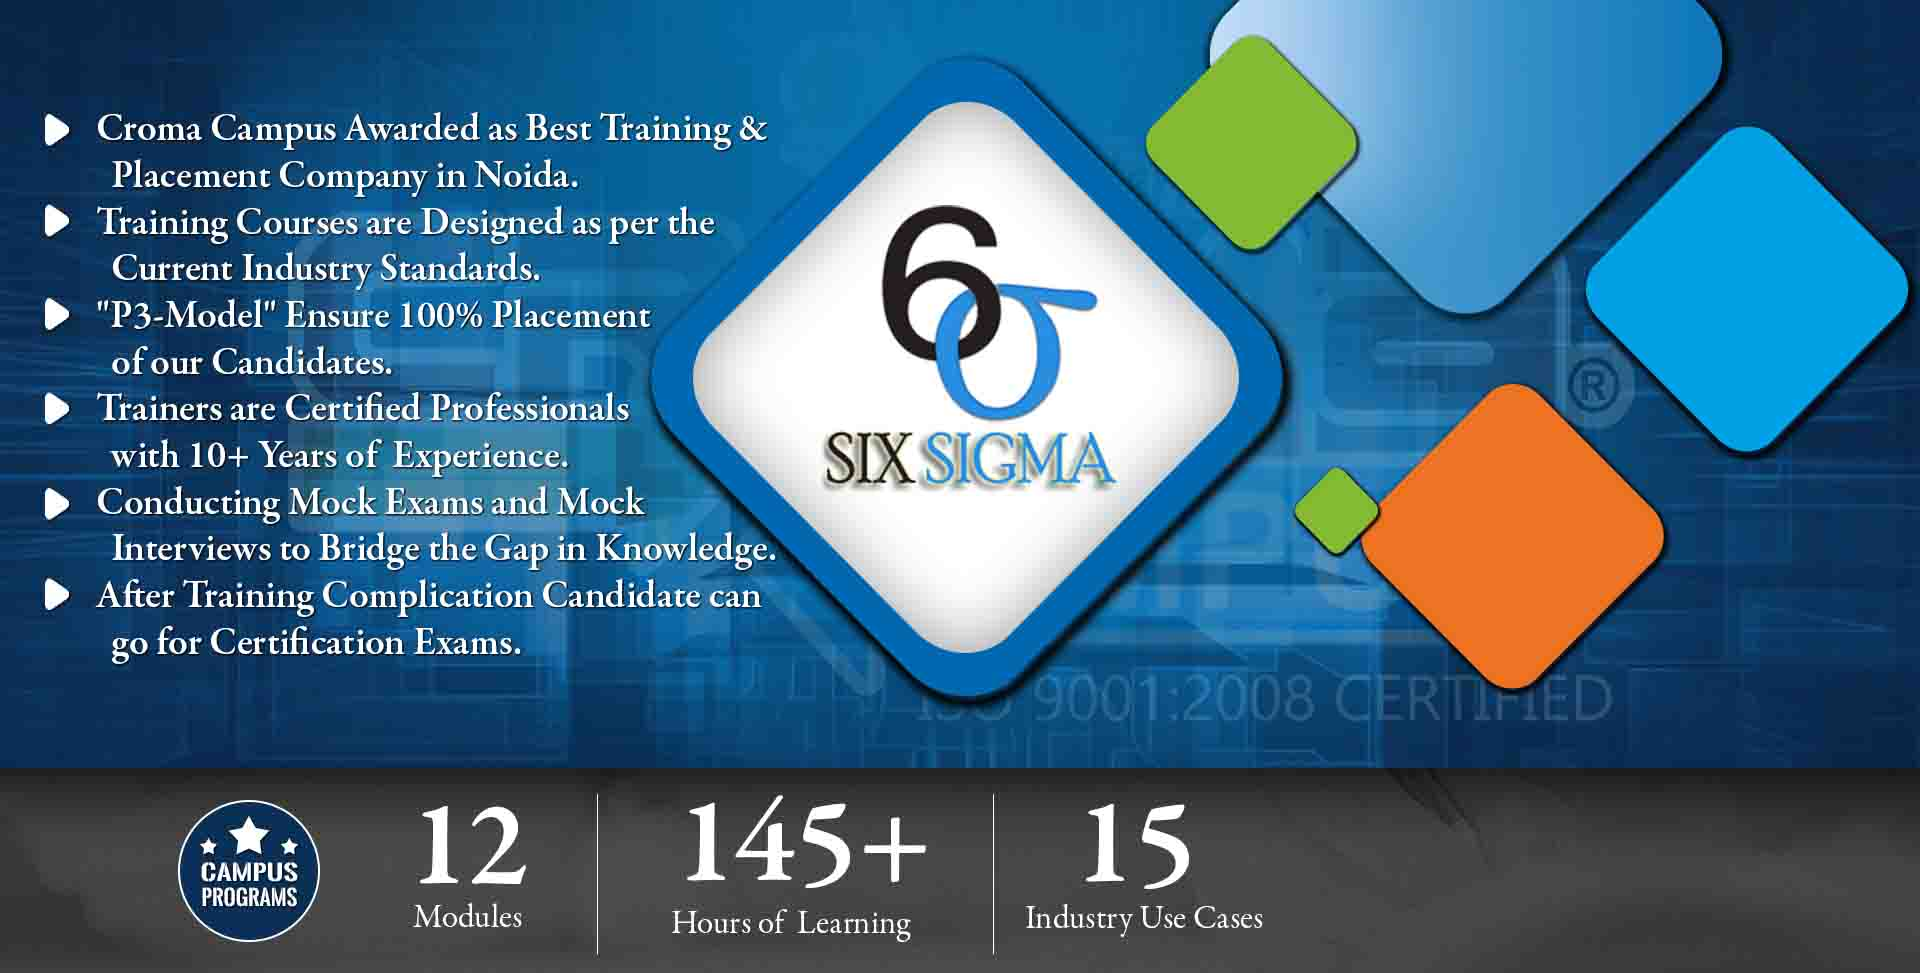 Six Sigma Yellow Belt Training in Noida- Croma Campus